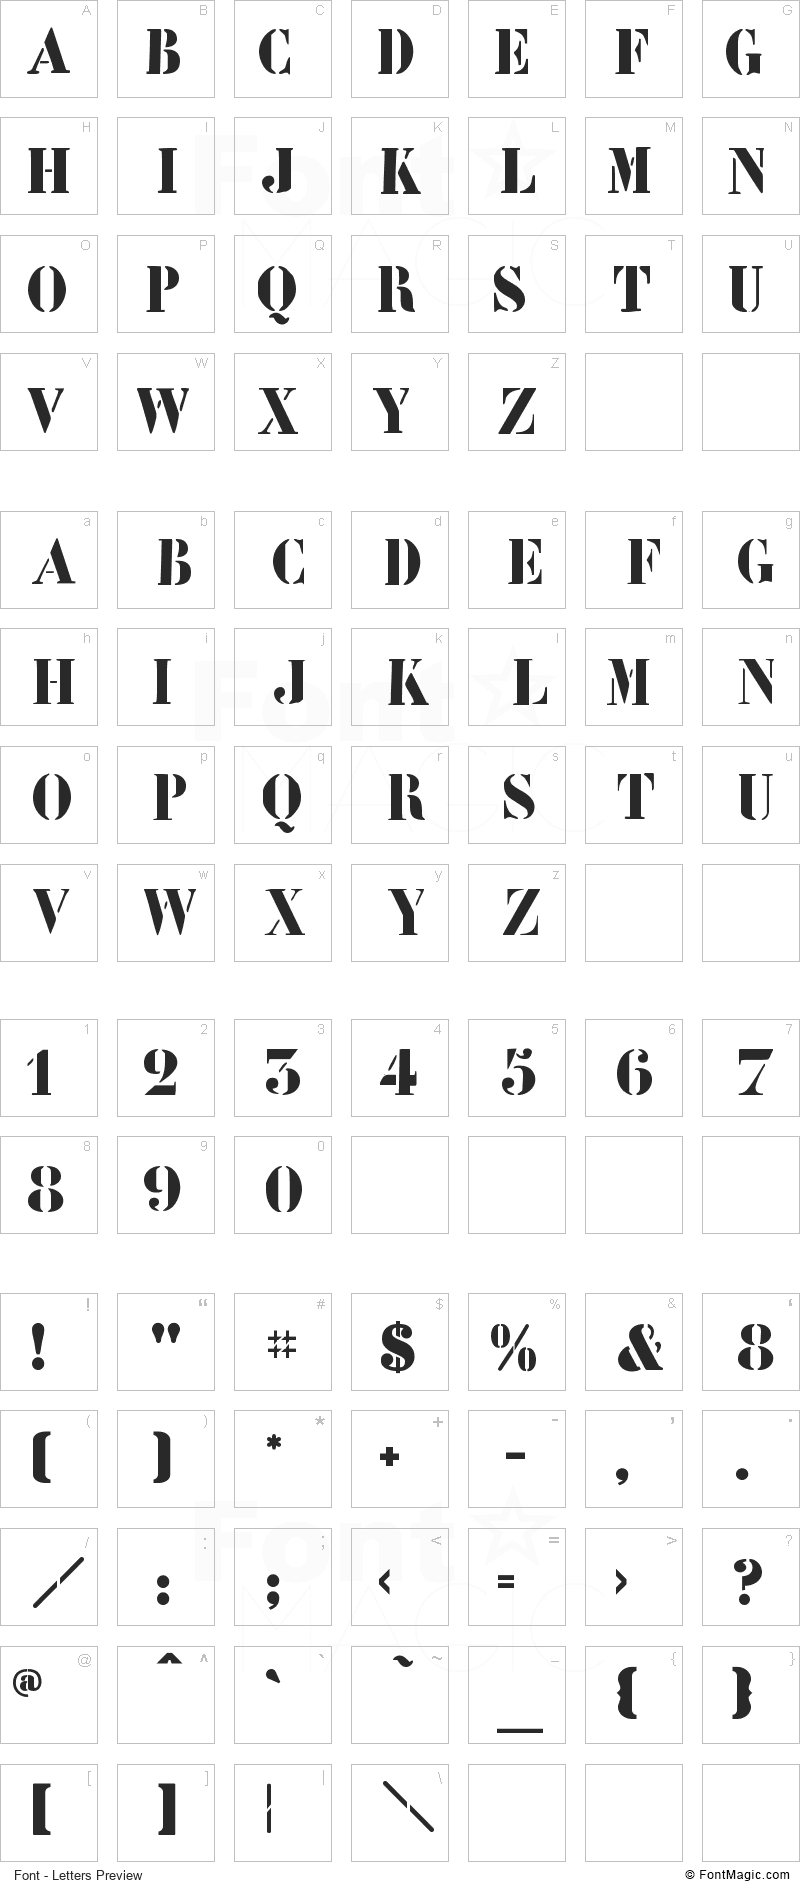 LeArchitect Font - All Latters Preview Chart